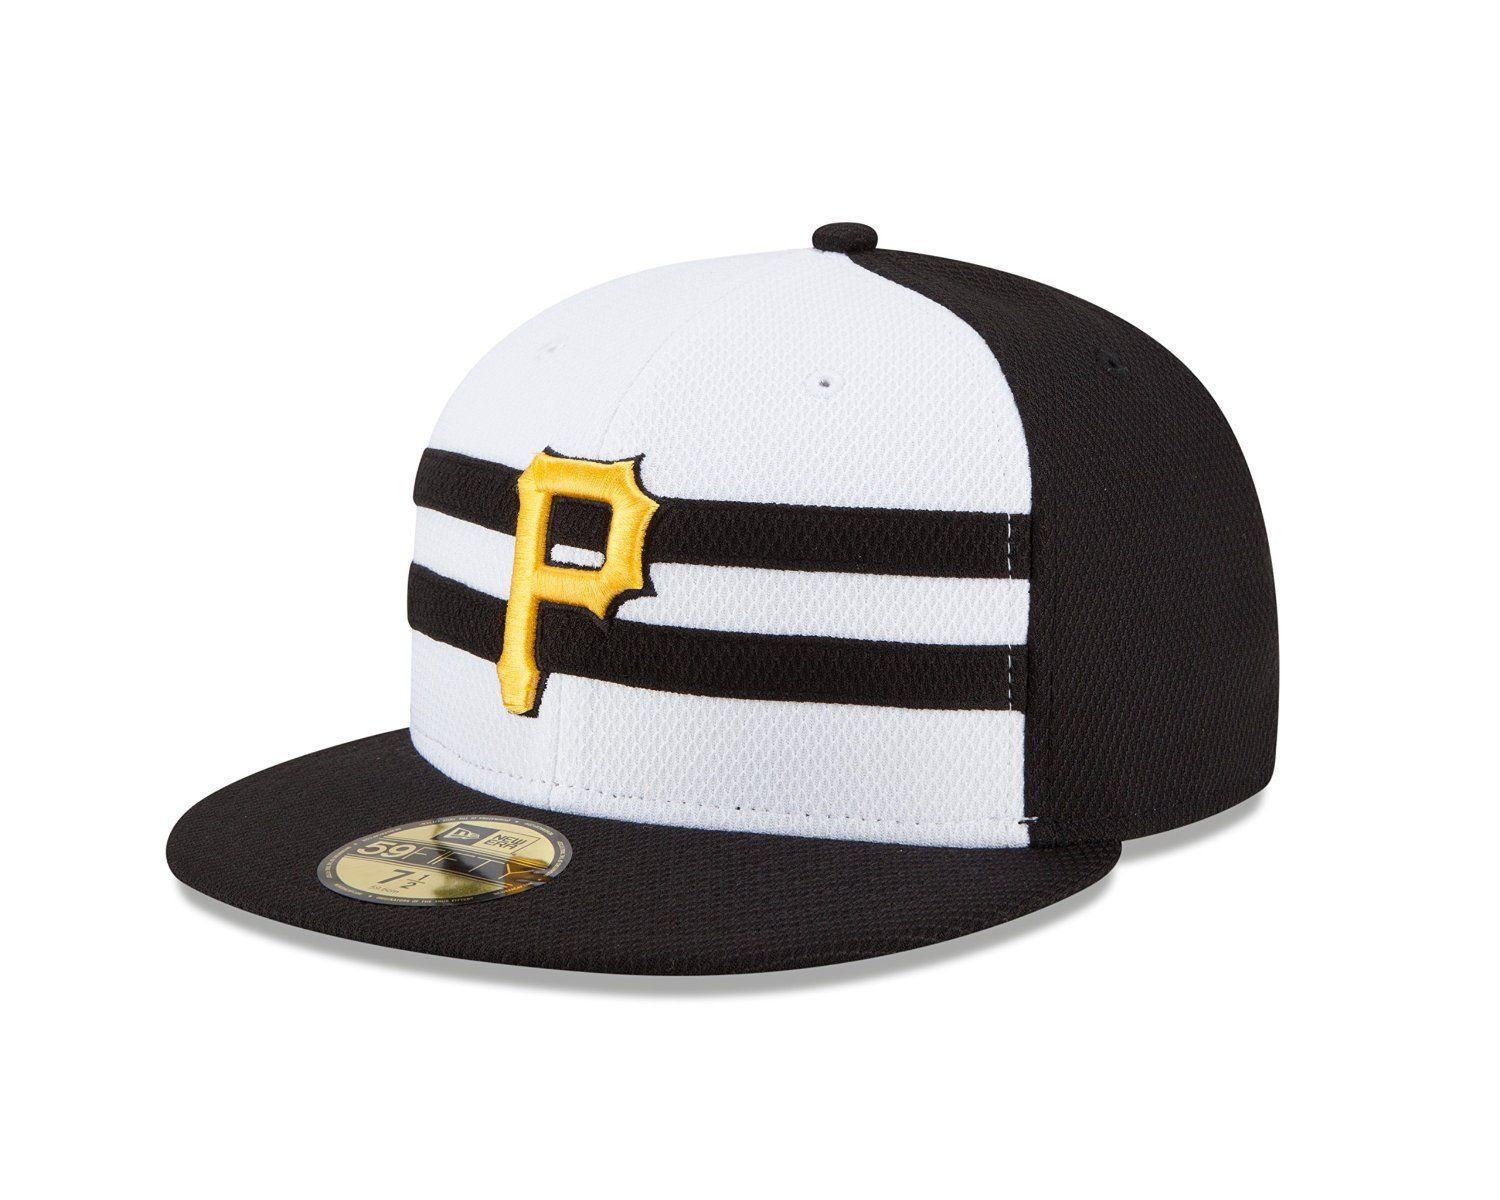 MLB Pittsburgh Pirates 2015 All Star Game On Field 59FIFTY Fitted ... 1e94c21f8ae